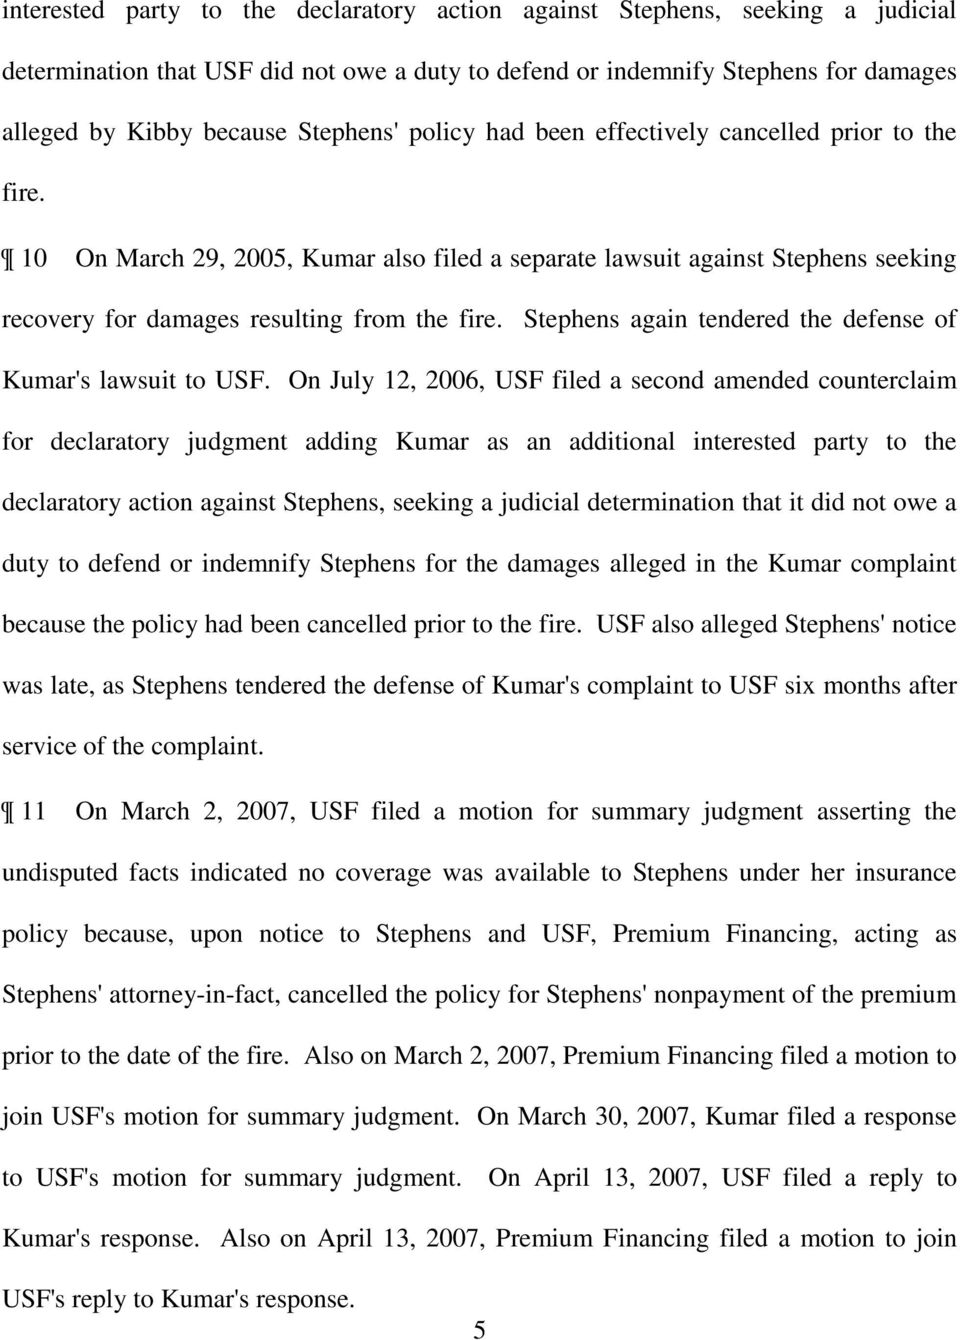 Stephens again tendered the defense of Kumar's lawsuit to USF.